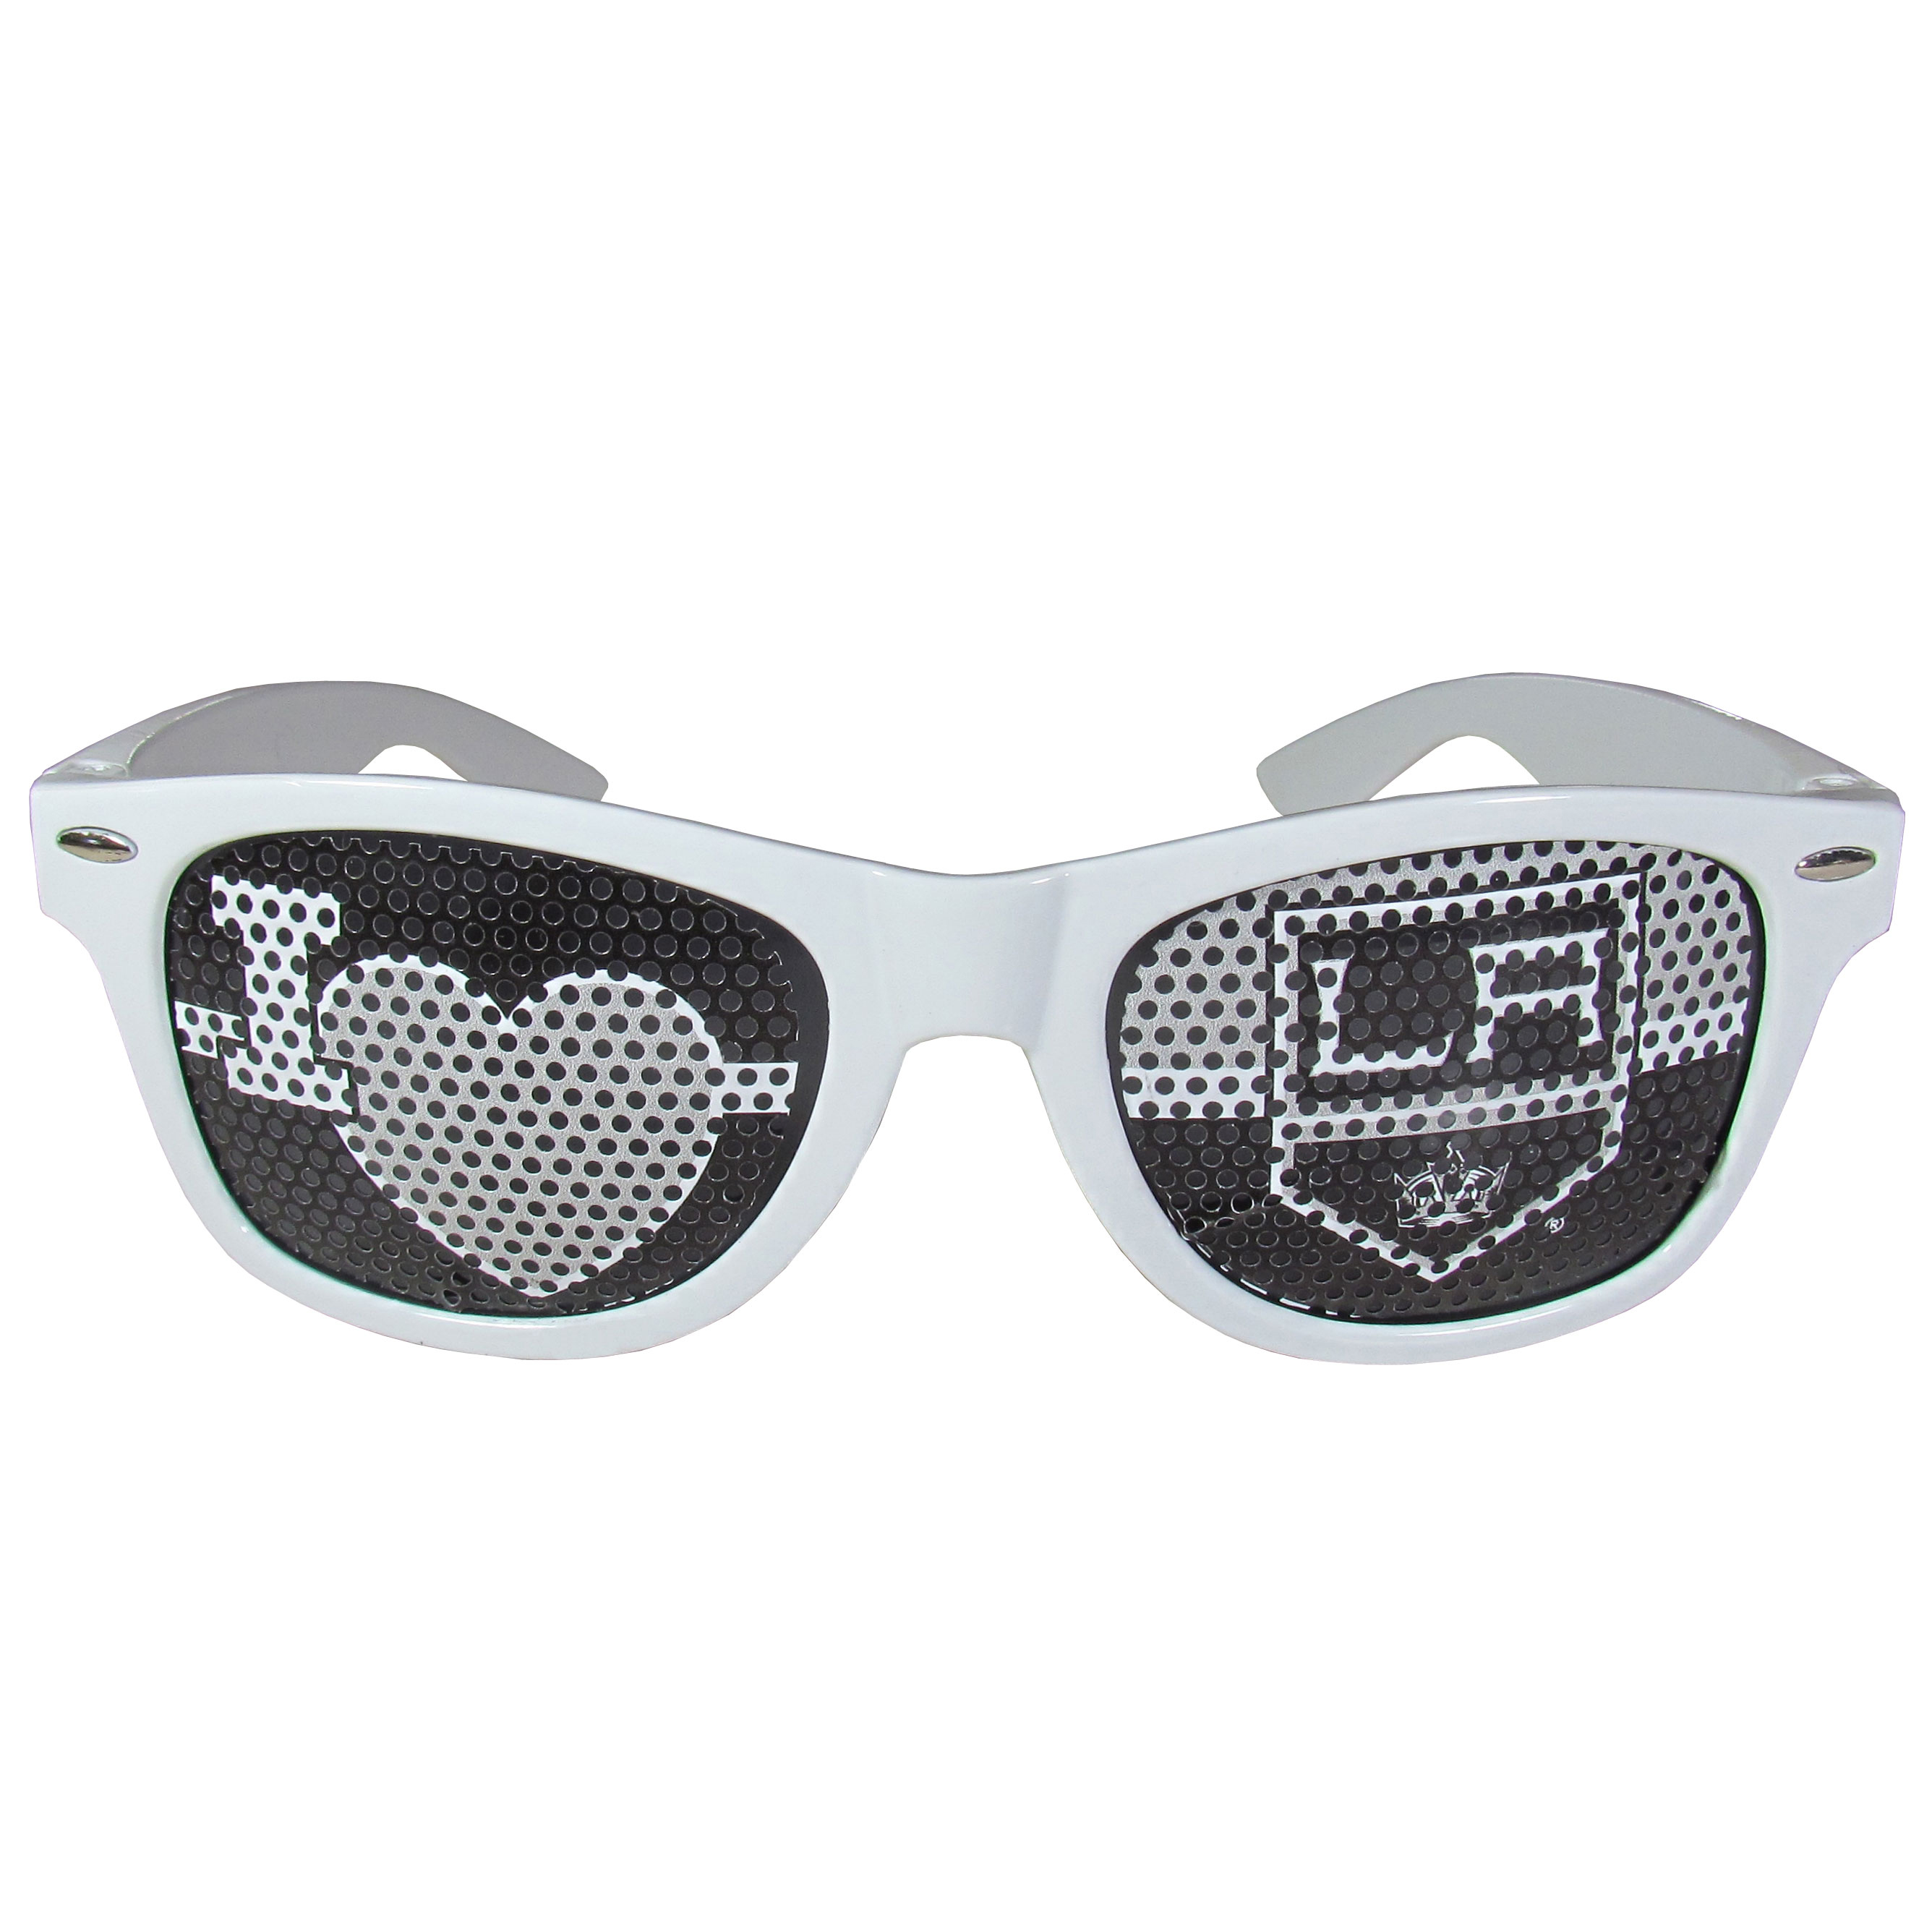 Los Angeles Kings® I Heart Game Day Shades - Our officially licensed I Heart game day shades are the perfect accessory for the devoted Los Angeles Kings® fan! The sunglasses have durable polycarbonate frames with flex hinges for comfort and damage resistance. The lenses feature brightly colored team clings that are perforated for visibility.